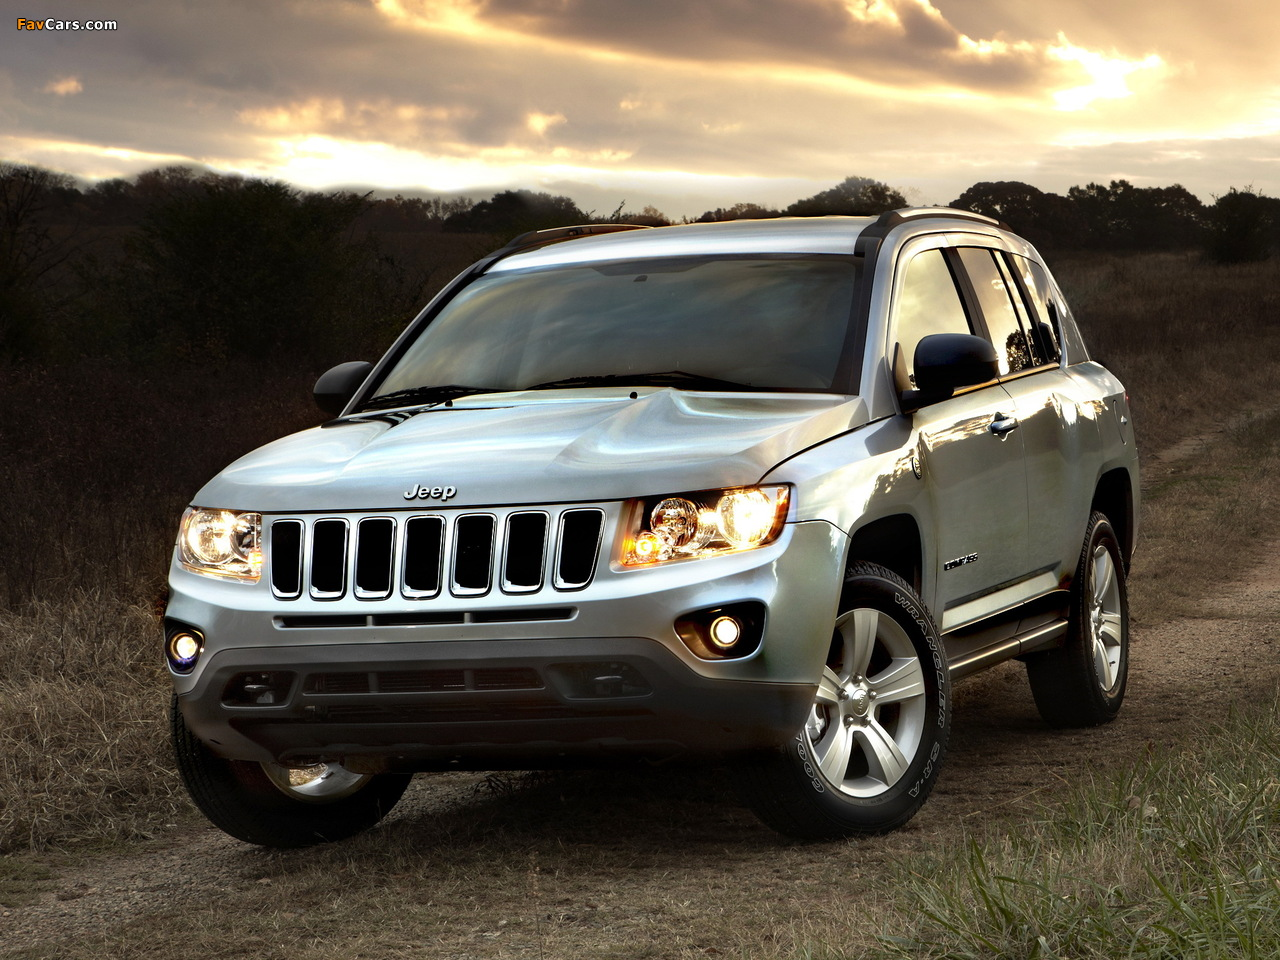 Jeep Compass 2010 images (1280 x 960)